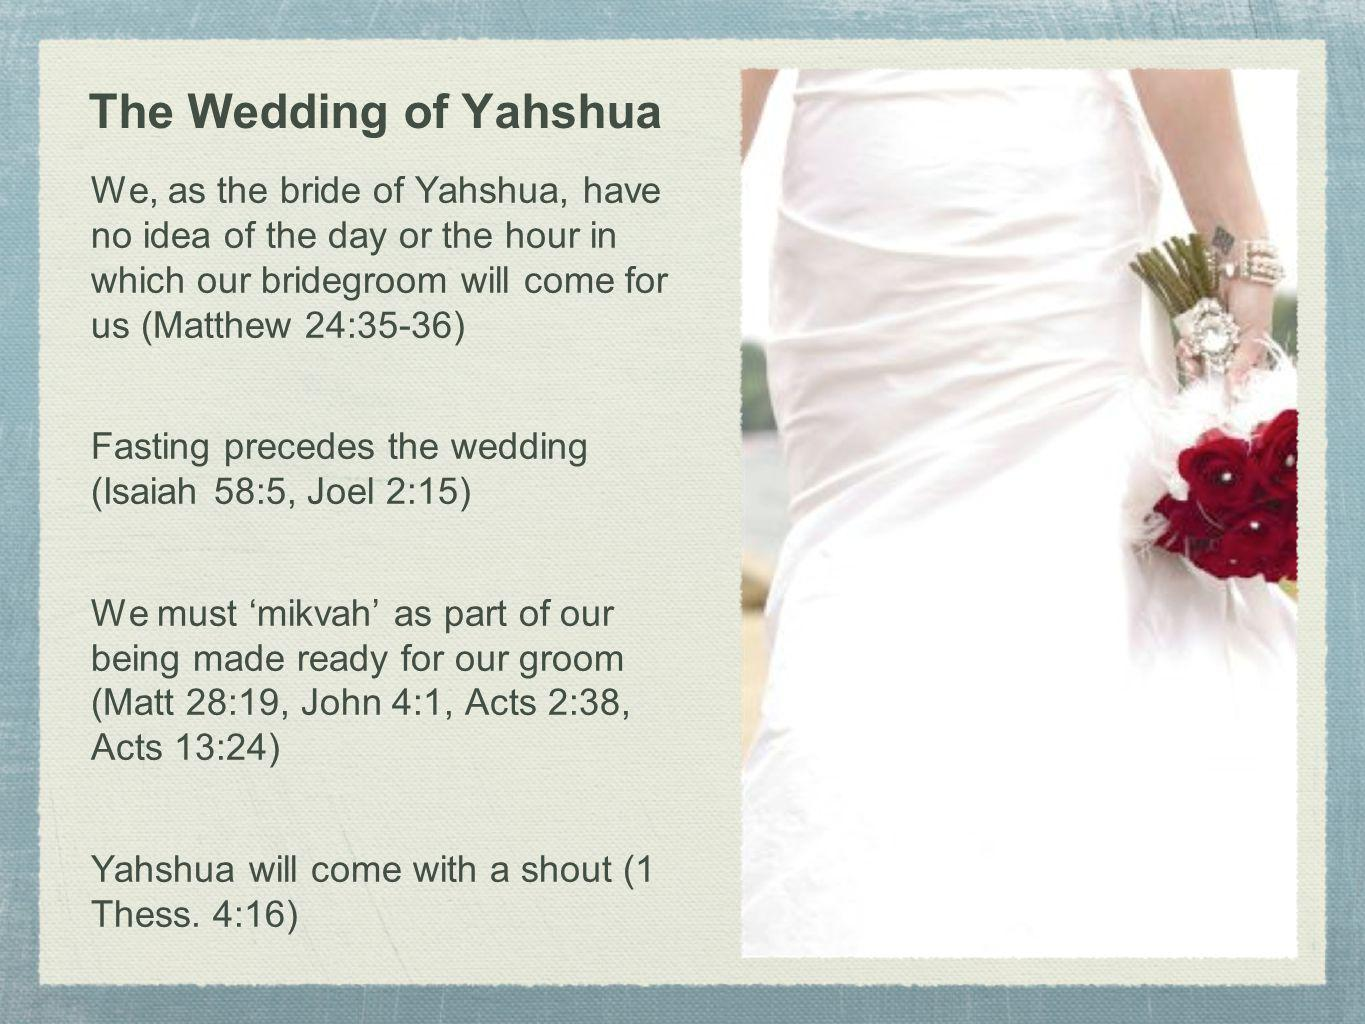 The Wedding of Yahshua We, as the bride of Yahshua, have no idea of the day or the hour in which our bridegroom will come for us (Matthew 24:35-36) Fa